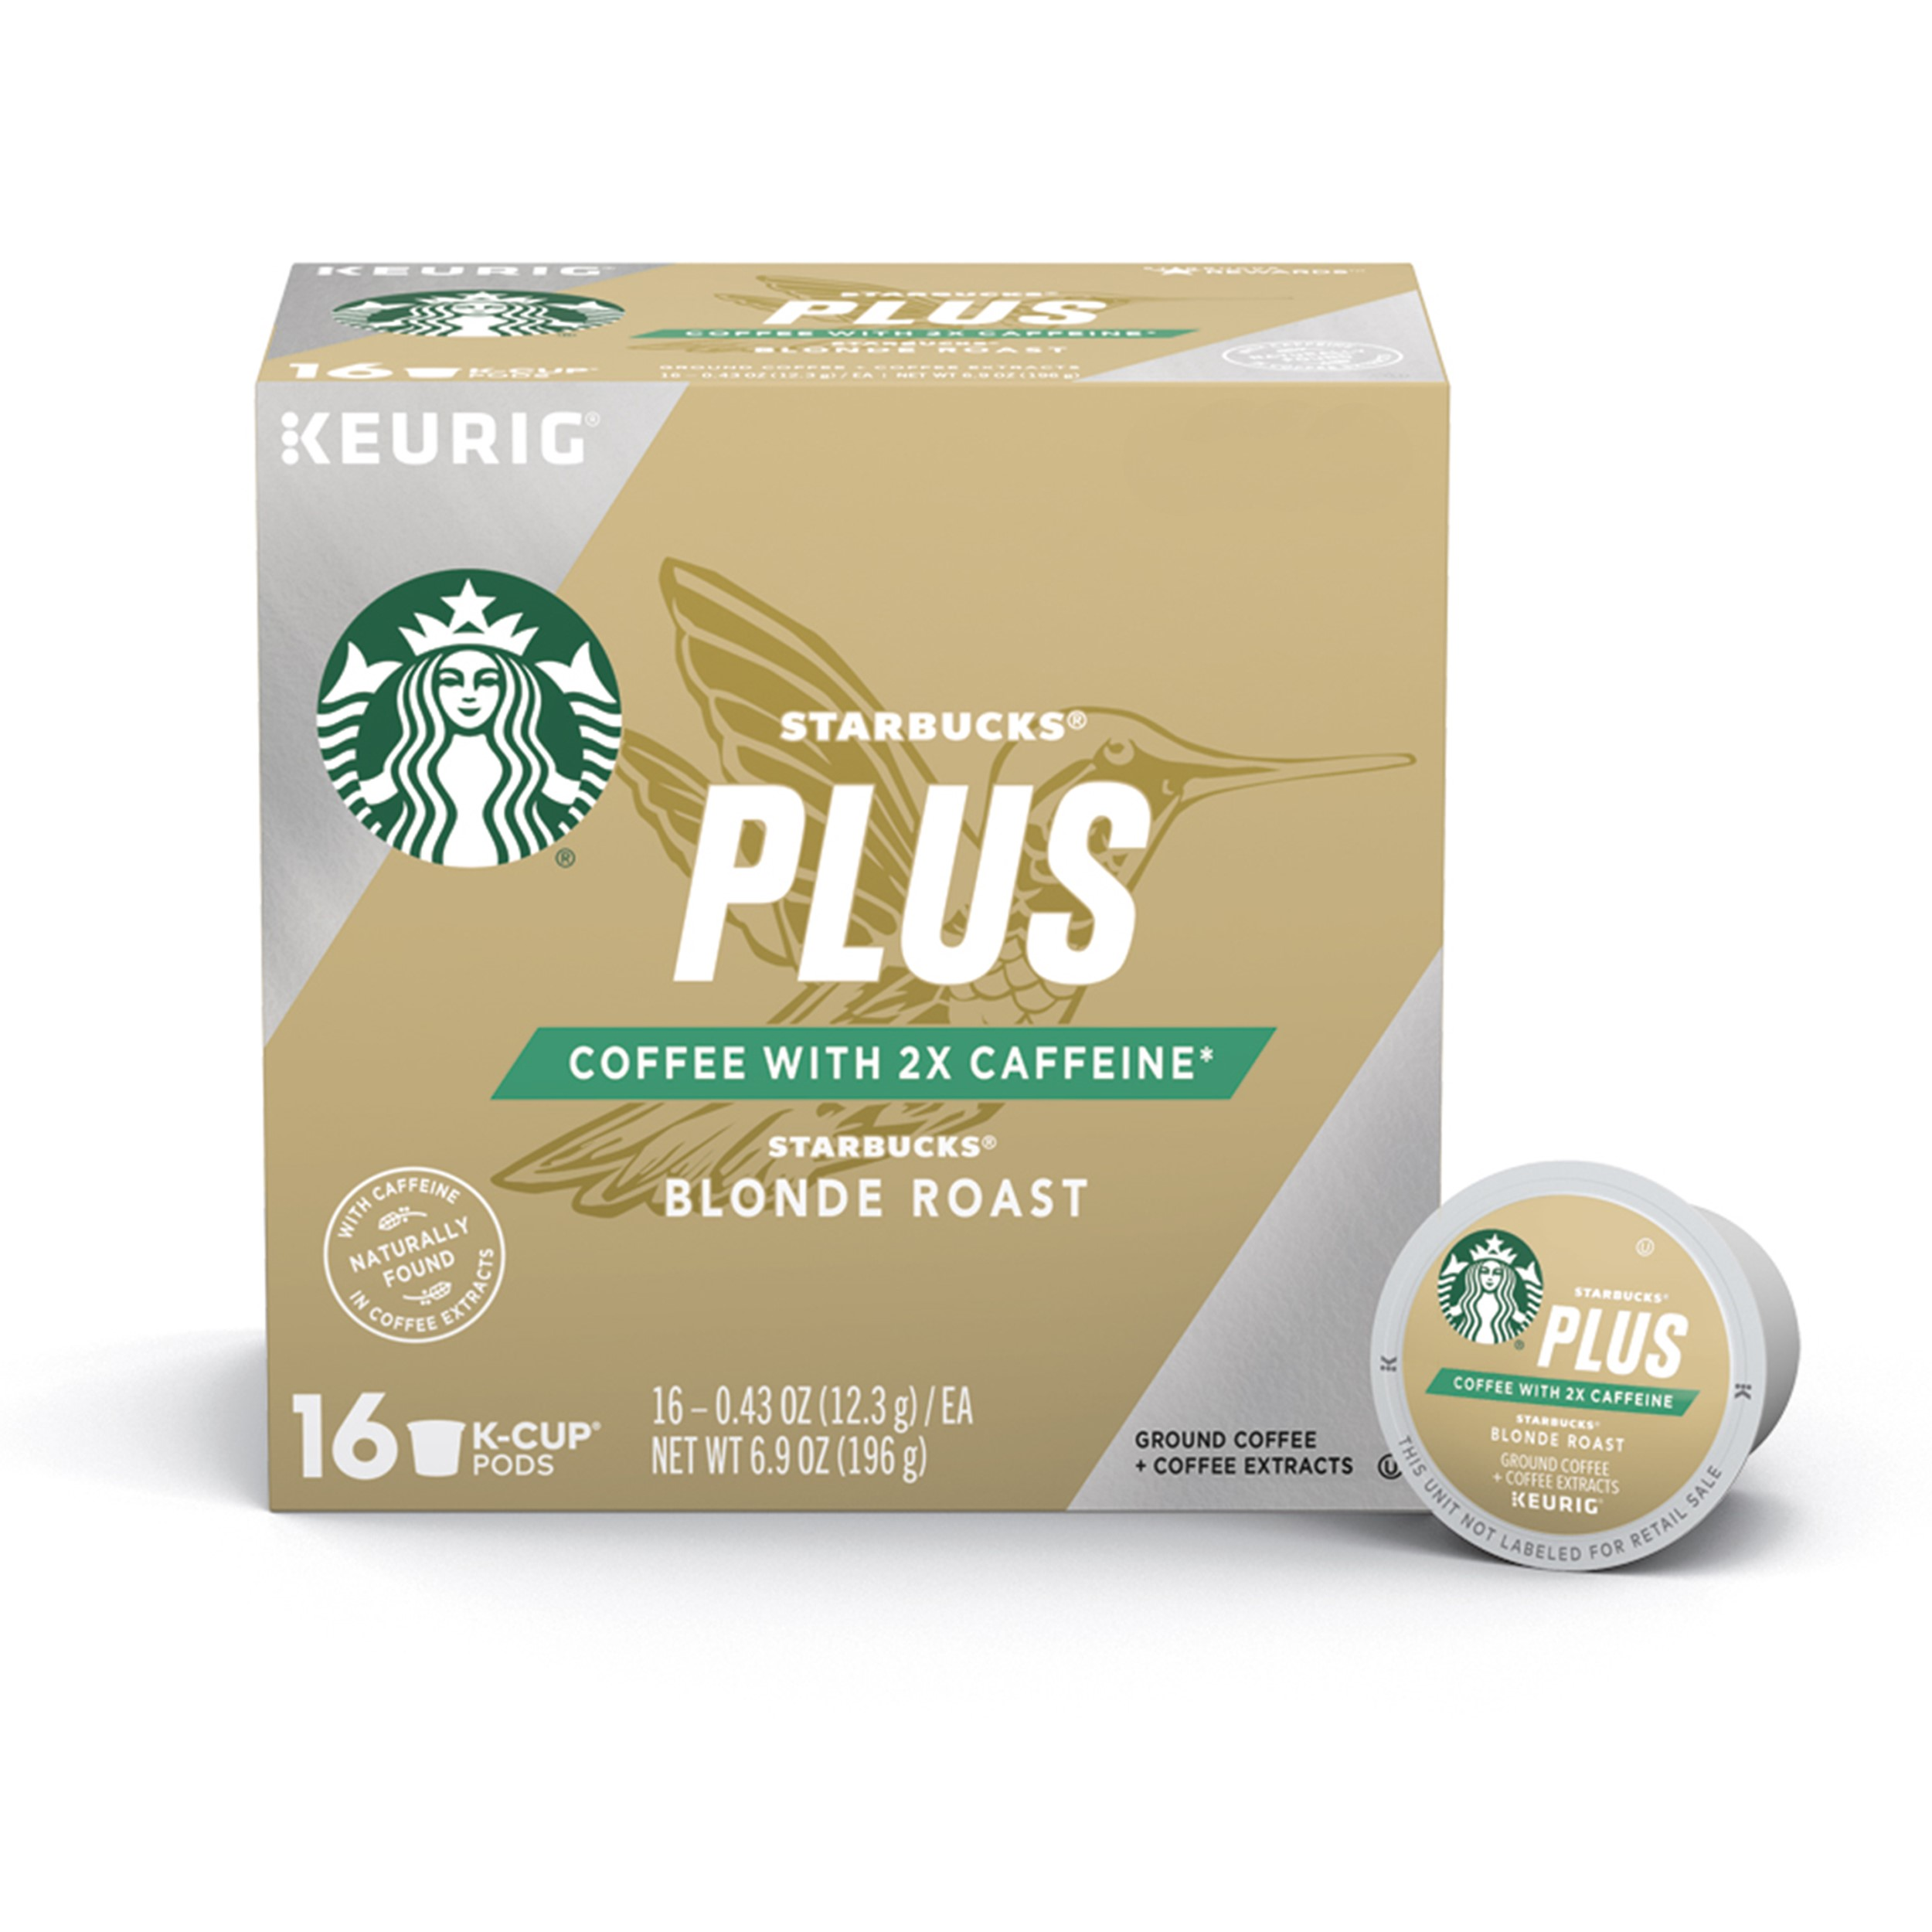 Starbucks Plus Coffee Blonde Roast 2X Caffeine Single Cup Coffee for Keurig Brewers, One Box of 16 (16 Total K-Cup Pods)